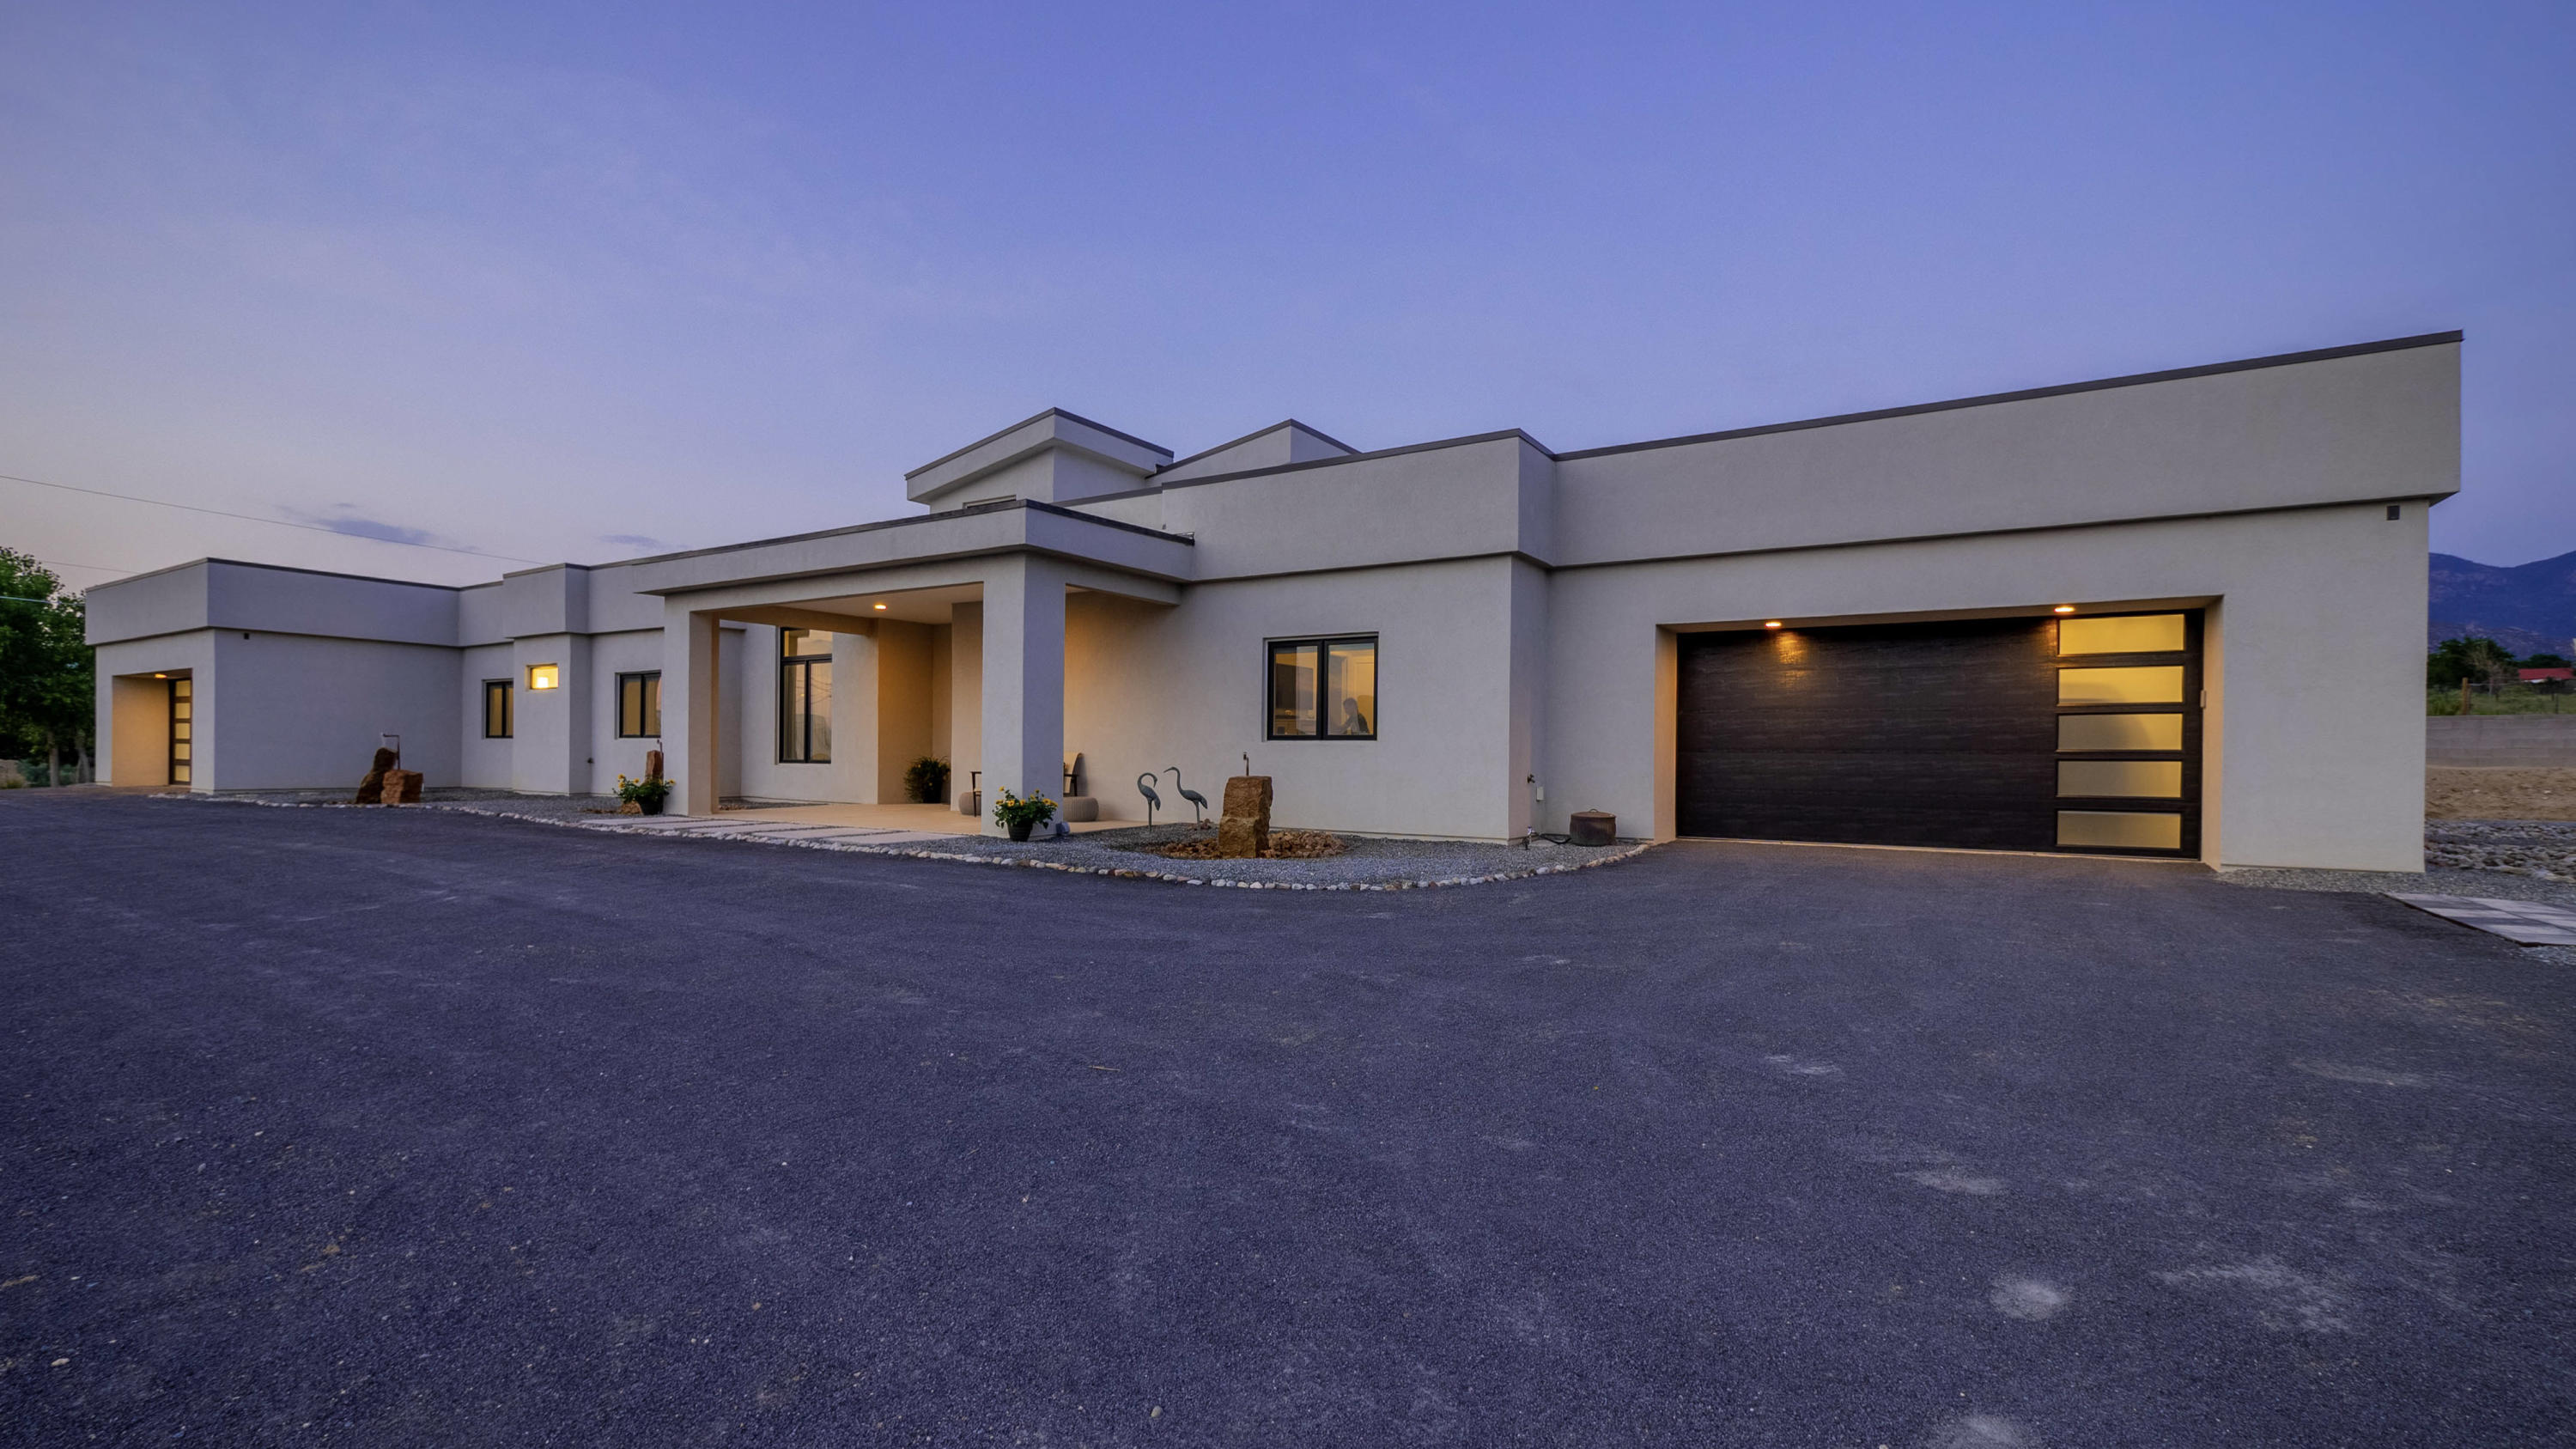 This one-of-a-kind contemporary masterpiece is located in the most desired North Albuquerque Acres located moments from hiking and biking trails, shopping, dining, and top-rated schools. This sophisticated and stylish estate sits on a premium .79-acre corner lot with stunning views of the Sandia mountains. A sprawling open floorplan welcomes you upon entry into the great room with high ceilings and a gourmet kitchen. Boasting 5 bedrooms, 4.5 baths, 6 car garage, beautiful quartz countertops, custom cabinetry, Viking appliances, and charming modern fixtures. Enjoy the luxurious master suite with a relaxing fireplace, garden tub, radiant heated floors, and a large walk-in closet. Additionally, the attached 1,100 SF casita features an elegant master suite, full kitchen w/walk in pantry,